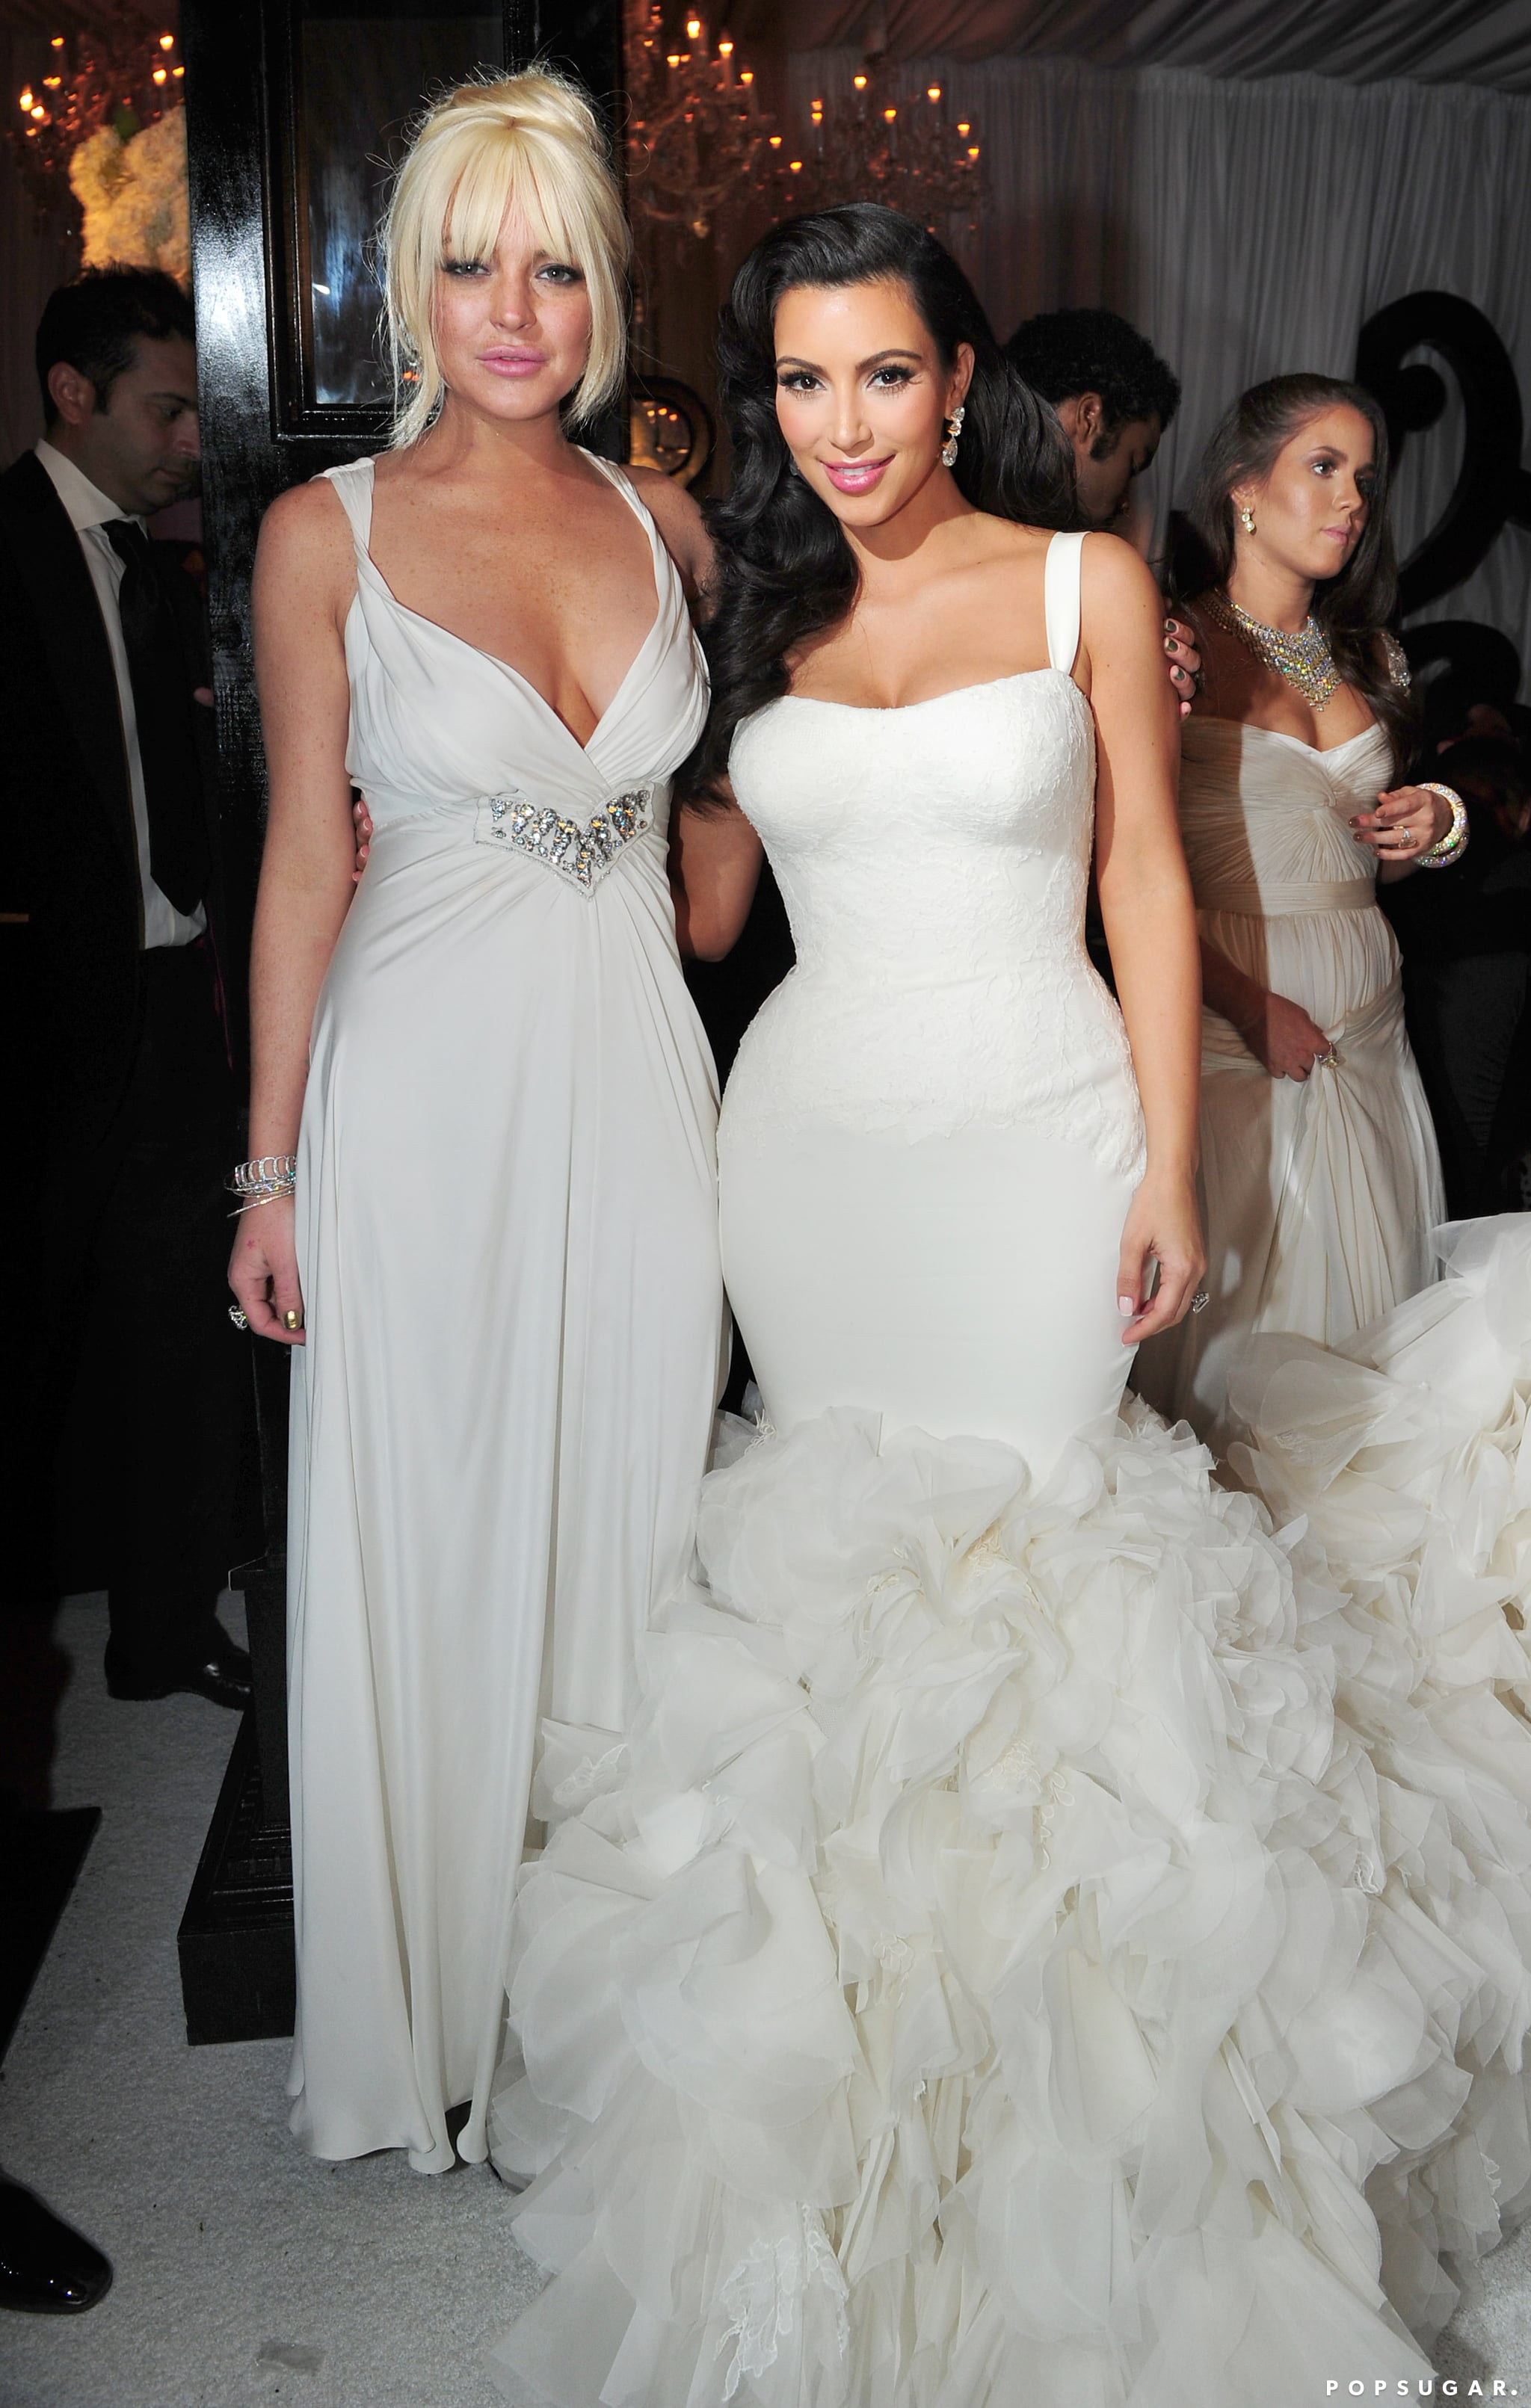 A blond Lindsay Lohan posed with the woman of honor.